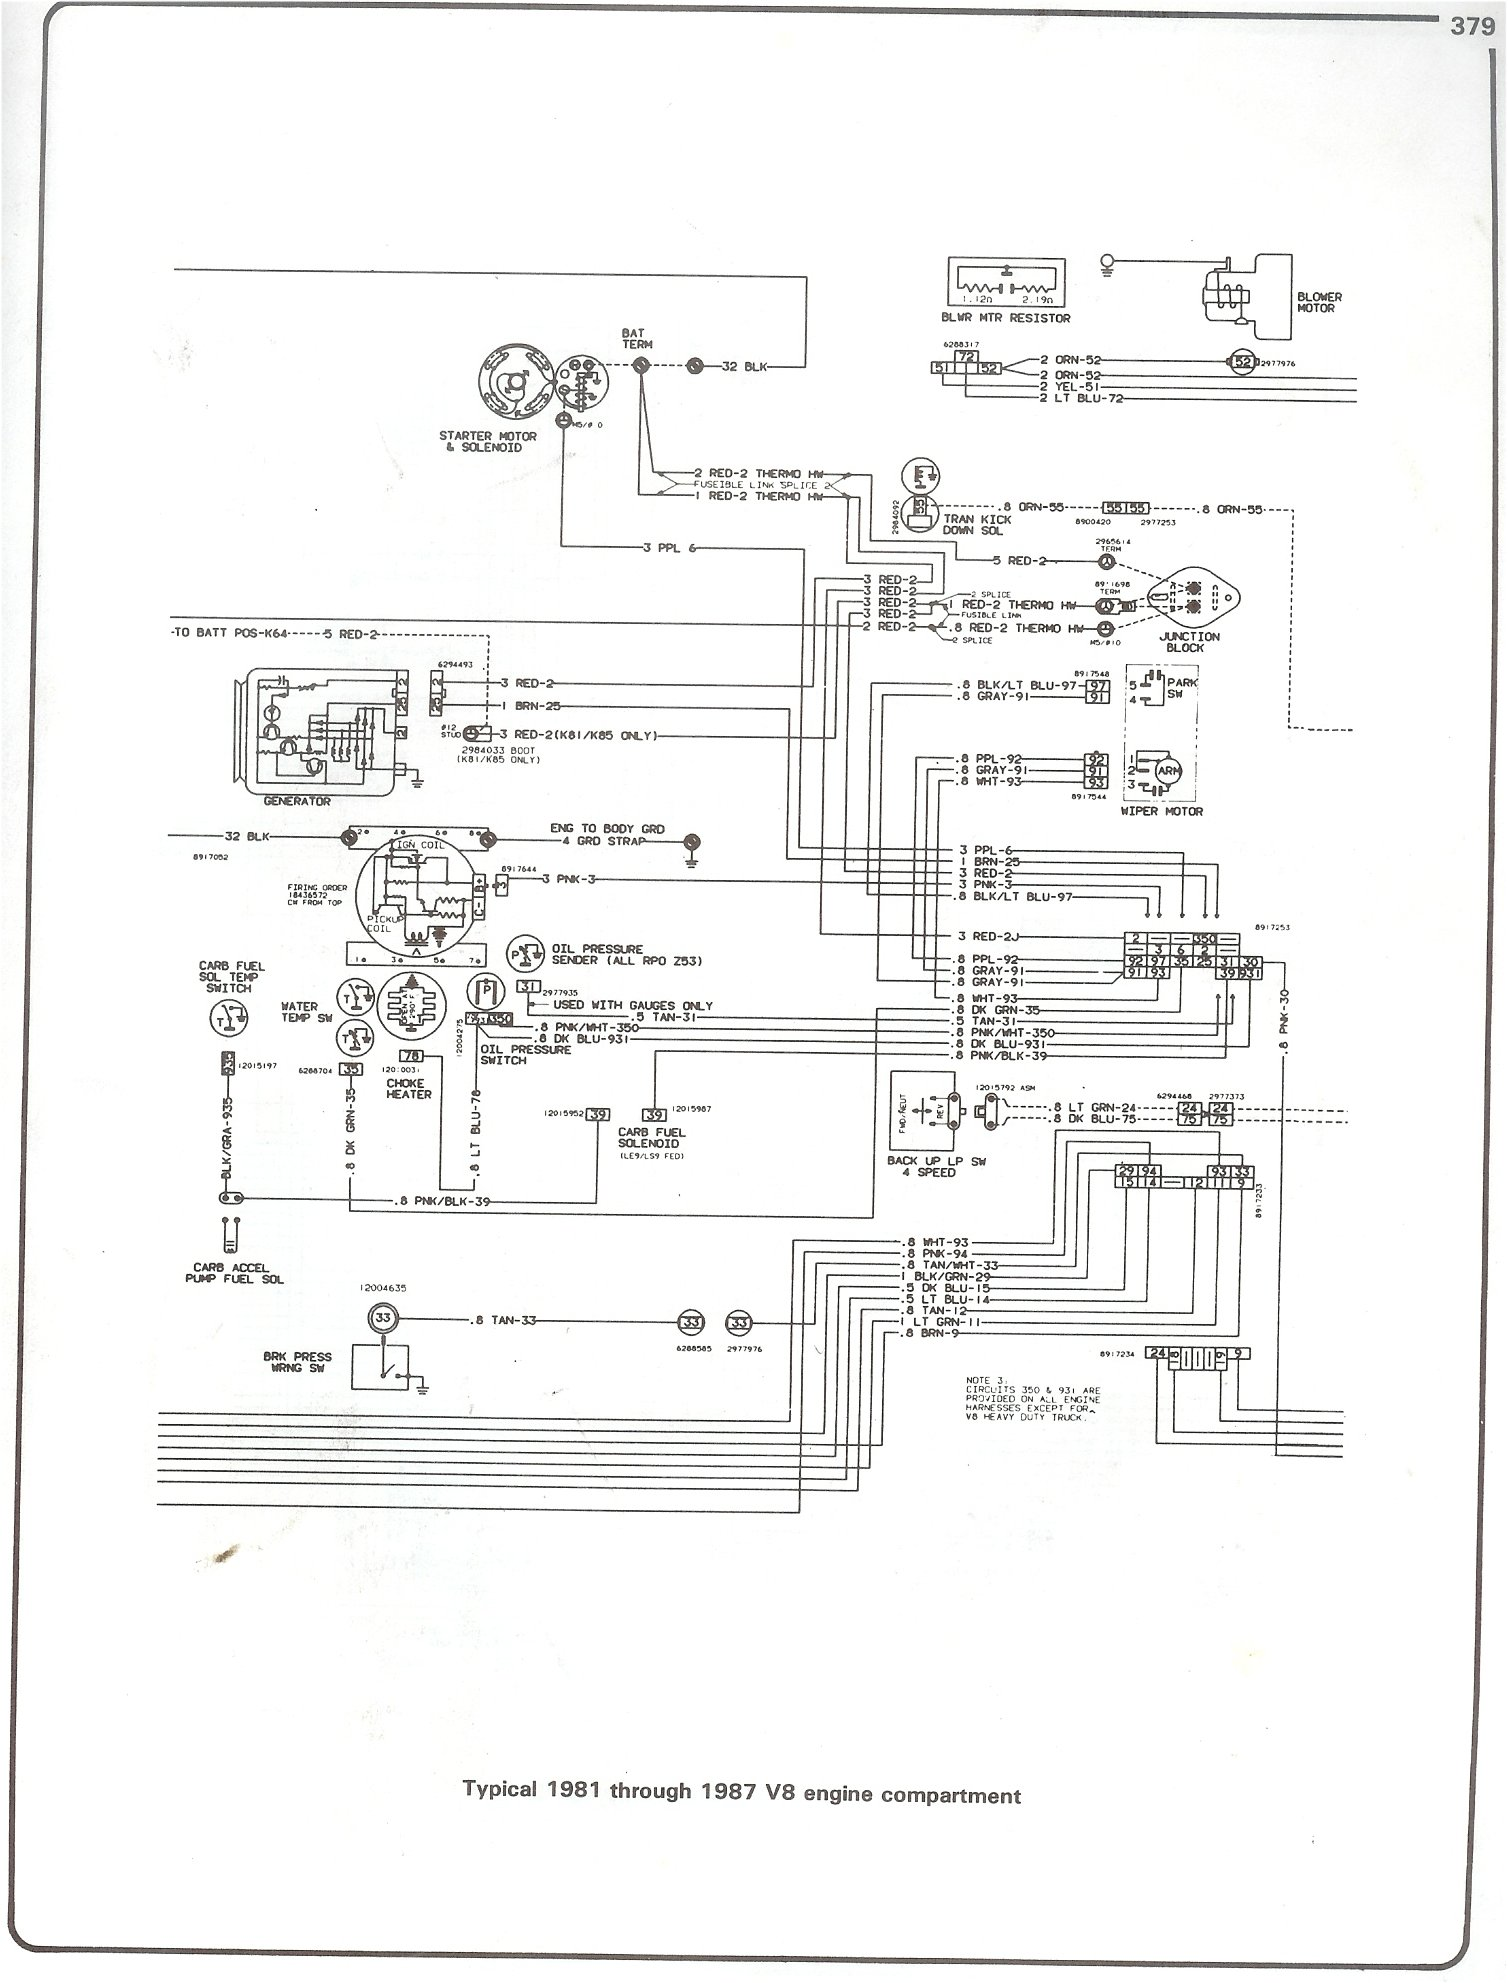 Complete 73 87 Wiring Diagrams 63 Chevy K20 86 K20 Wiring Diagram